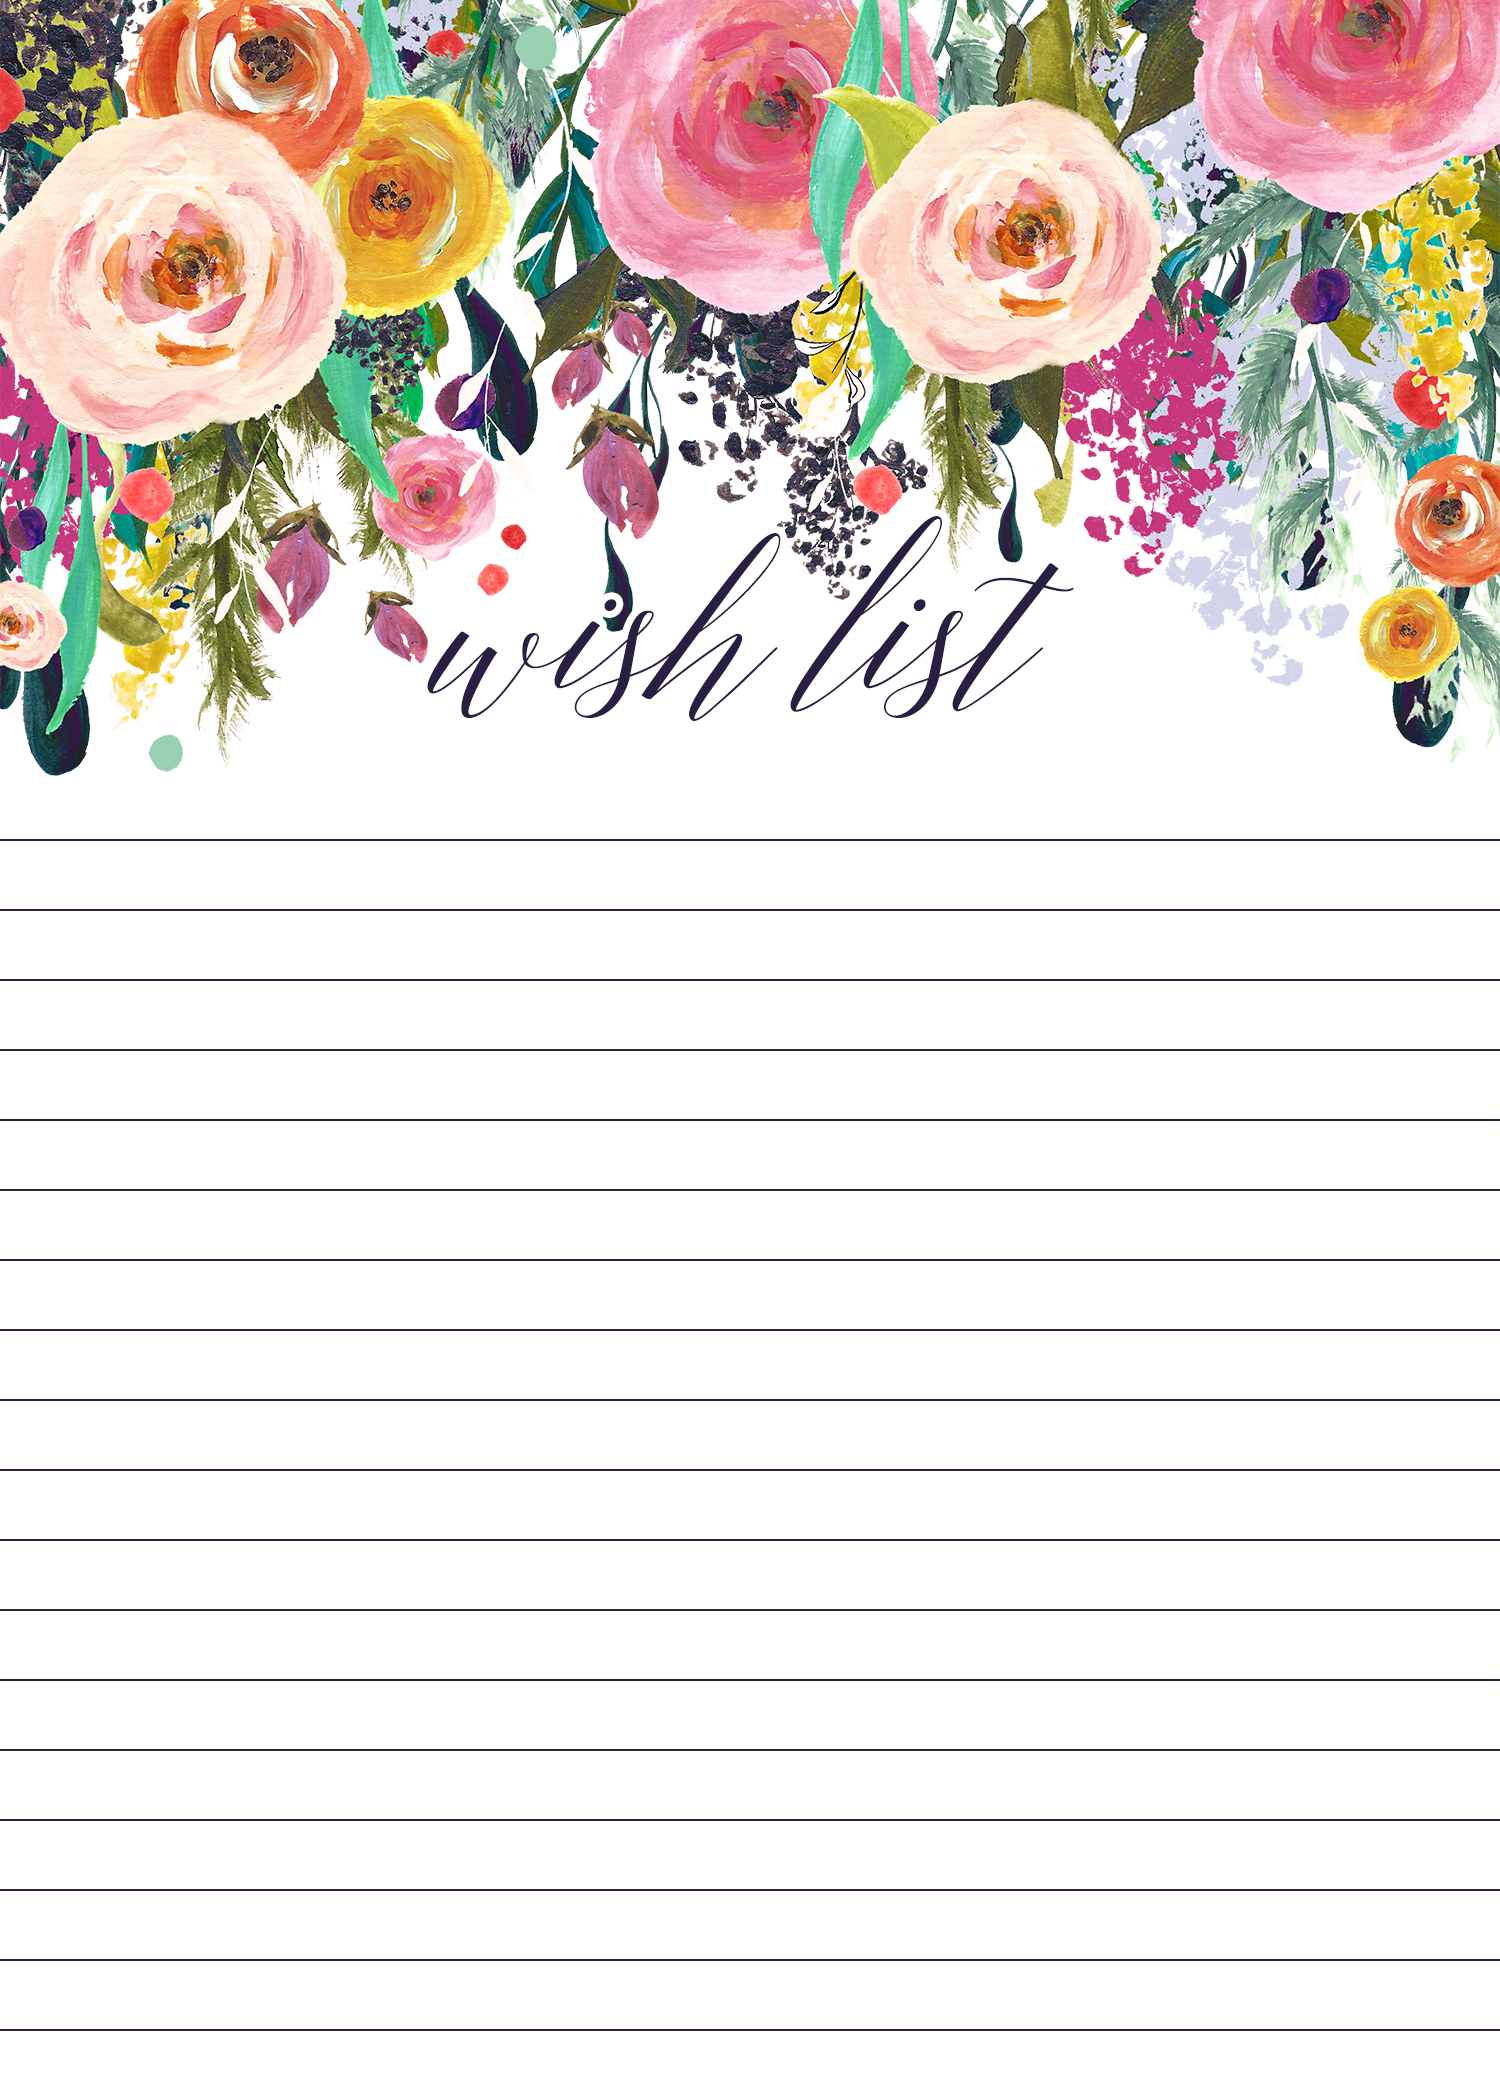 This free printable thrift store wish list is a great place to start jotting down ideas of what you'd like to find